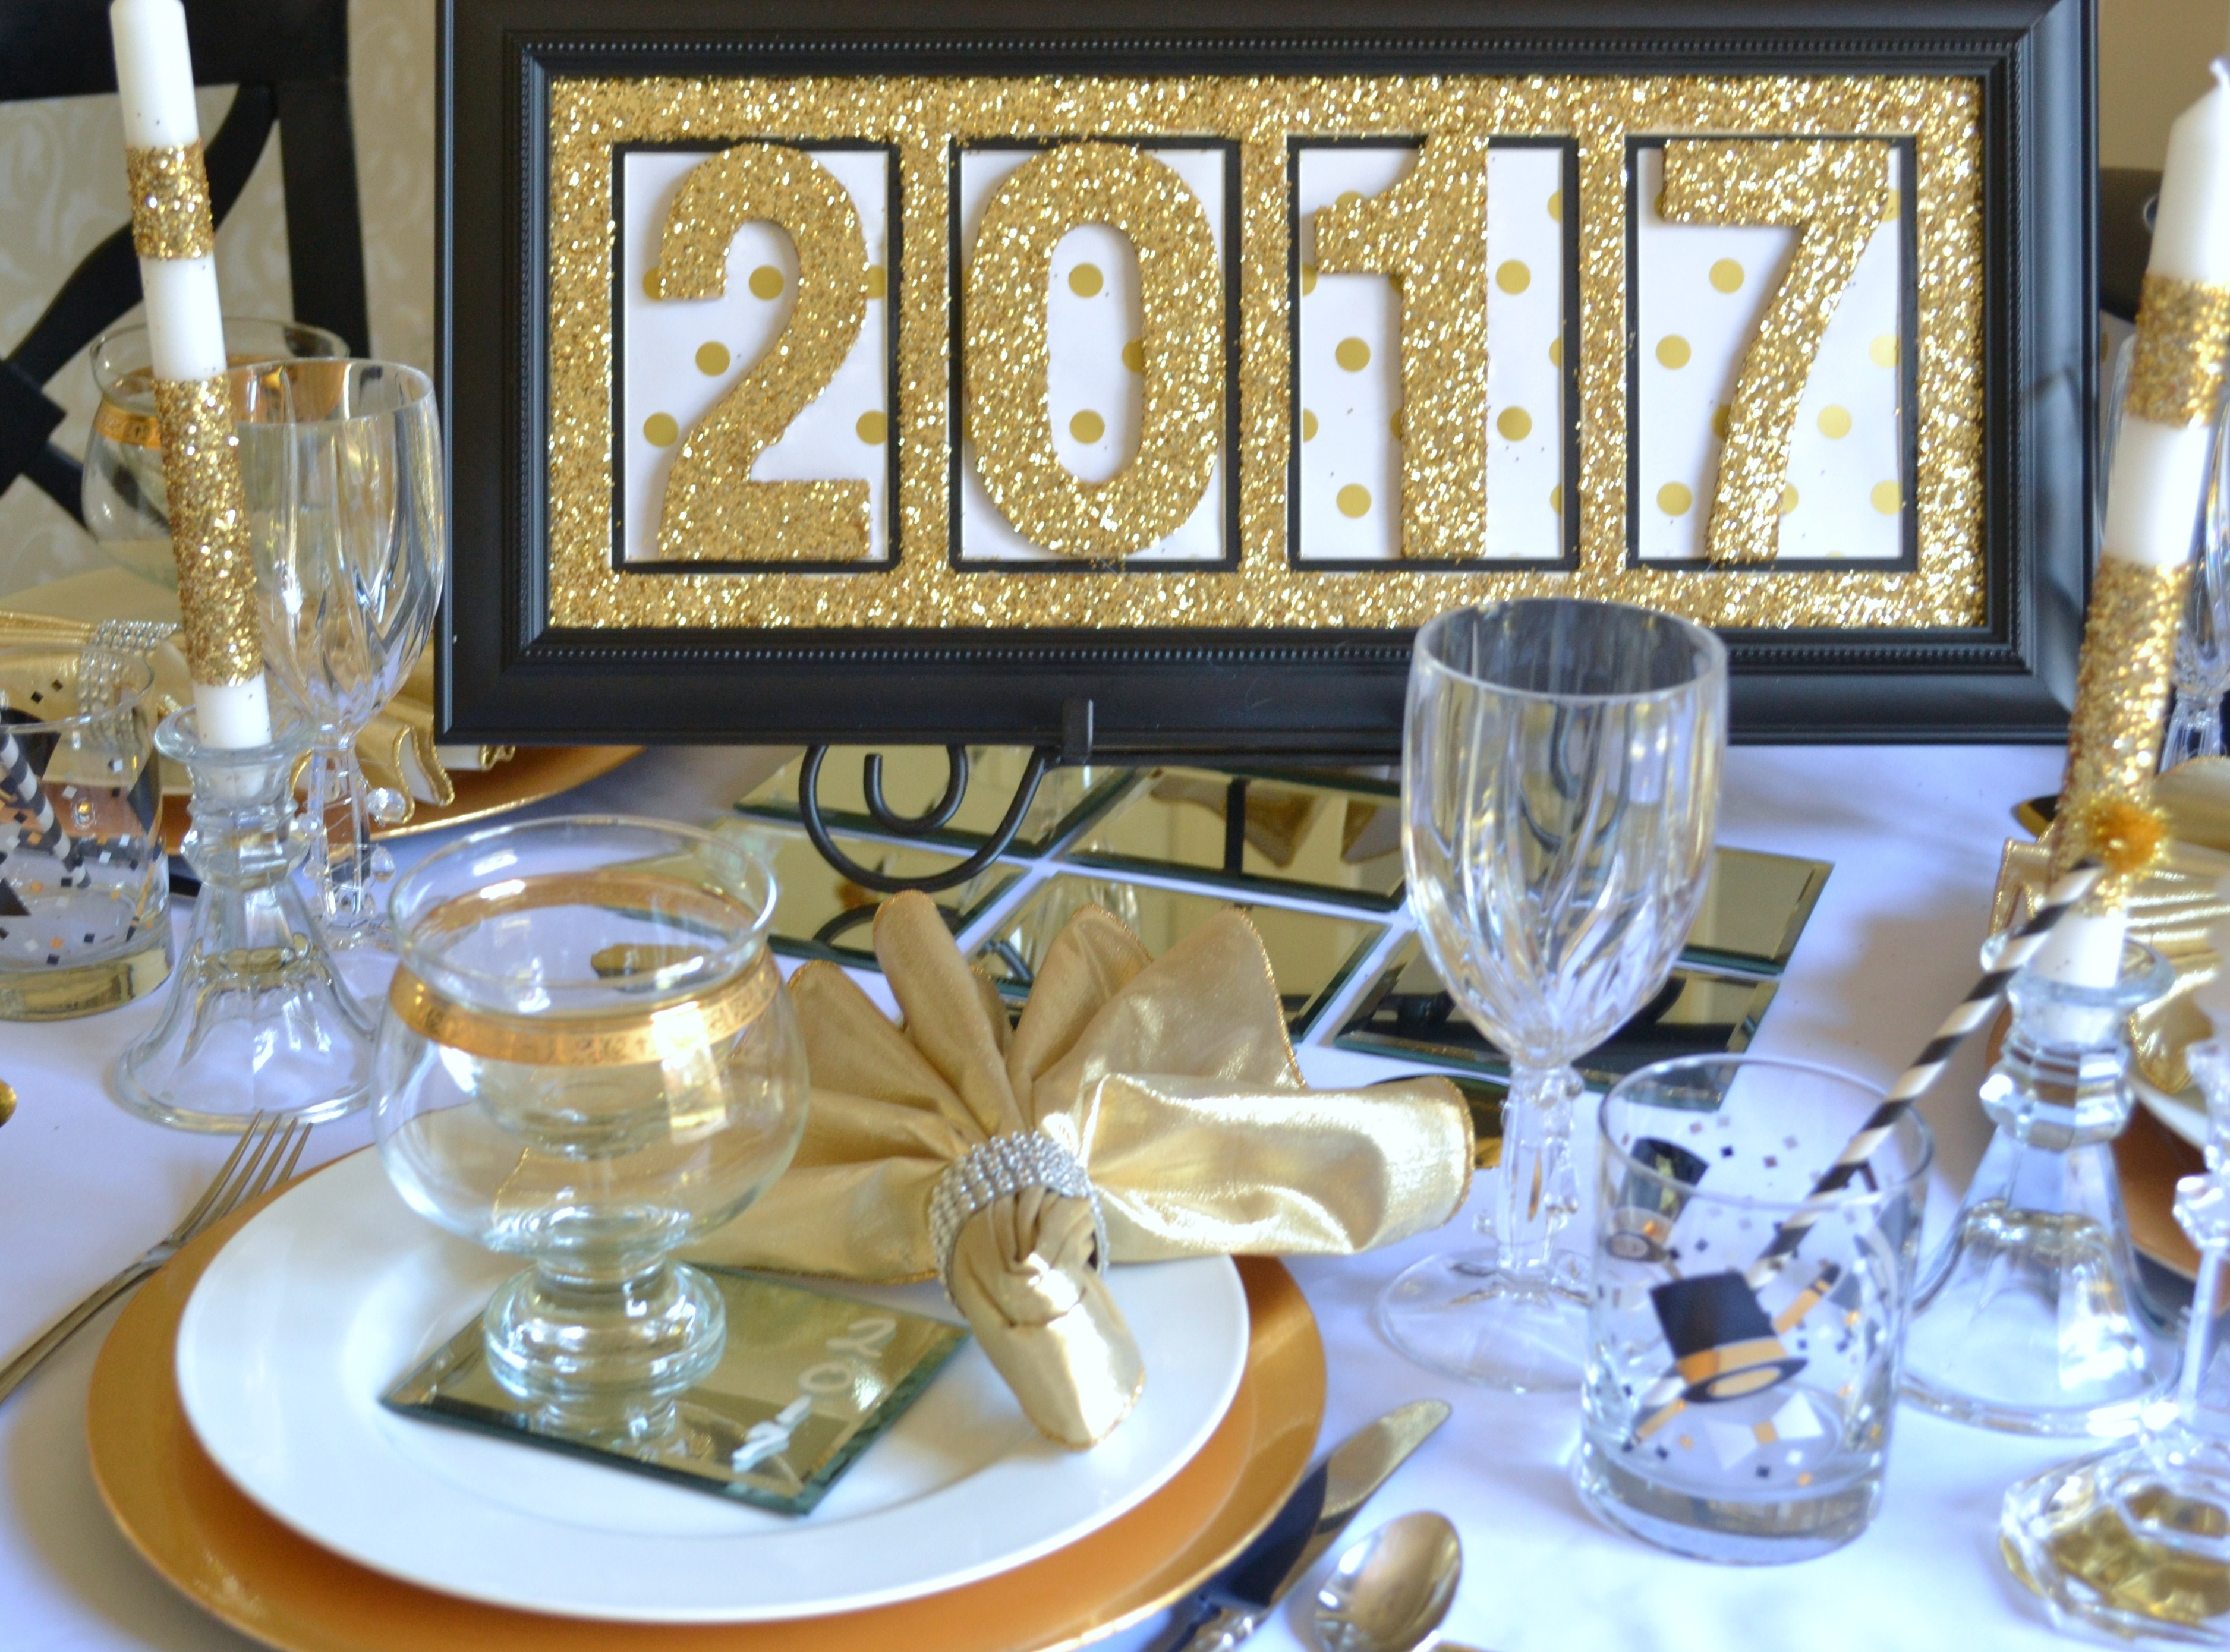 new-years-tablescape-2017-table-top-setting-lizbushong-com